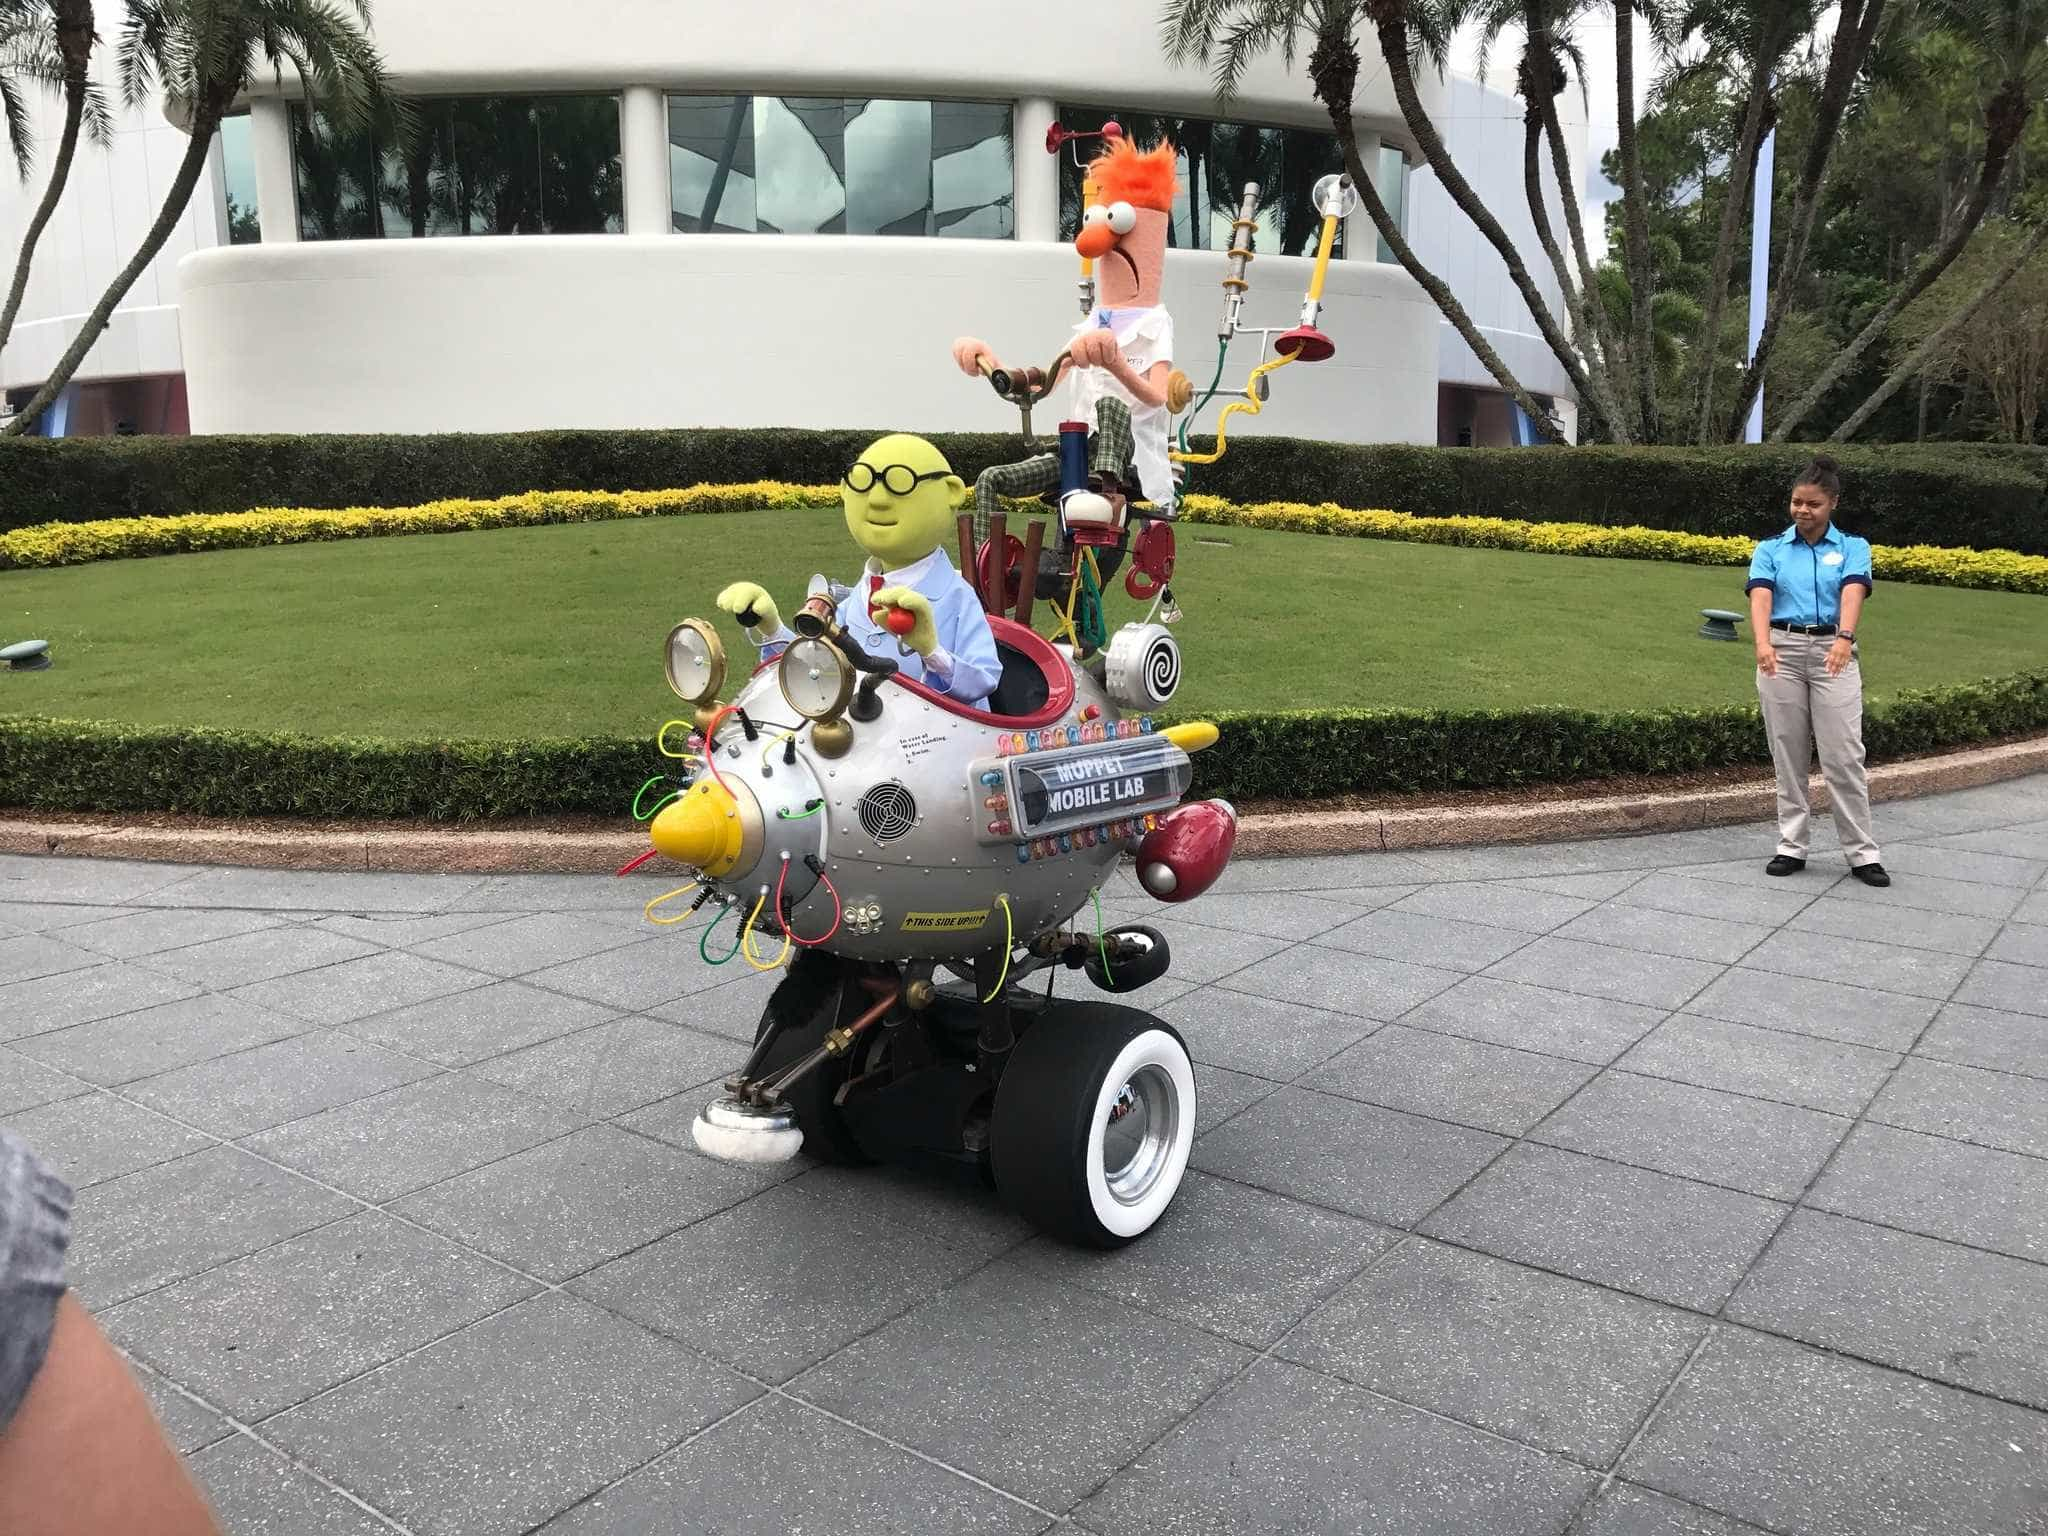 The Muppets Mobile Lab returns to Epcot in 2016 for another test run